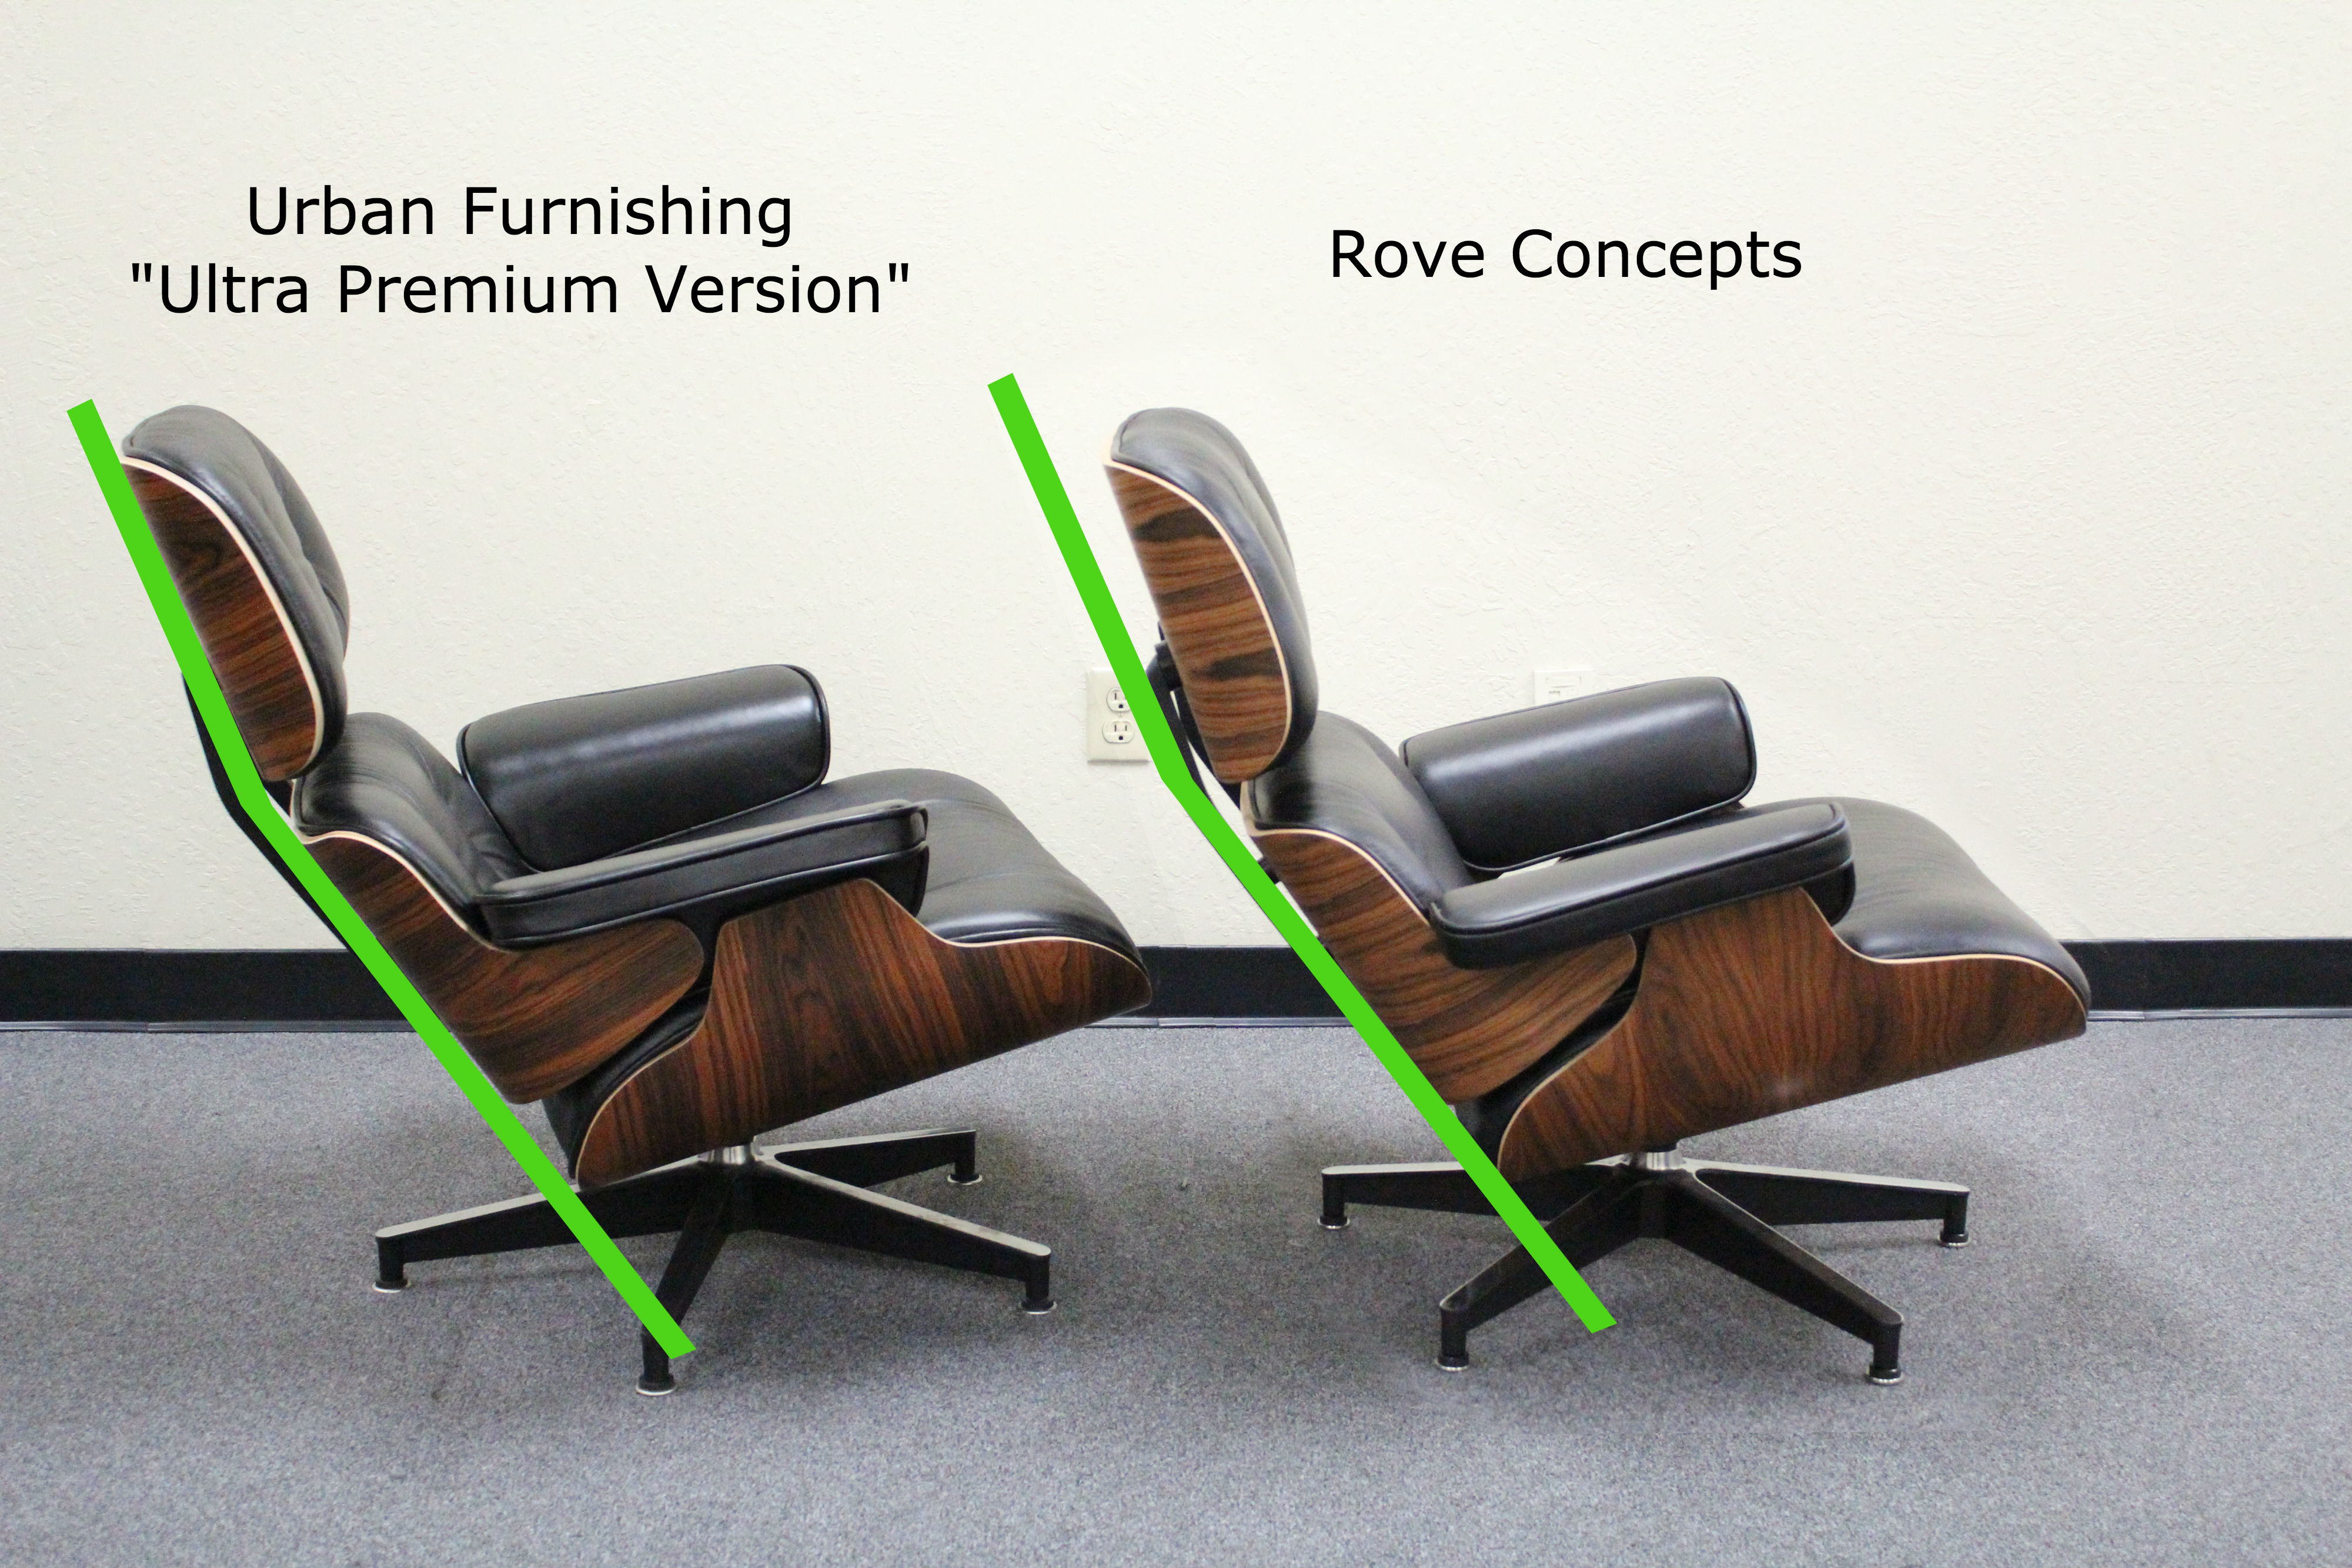 Eames lounge chair copies worth it page 59 styleforum for Grand repos chair replica